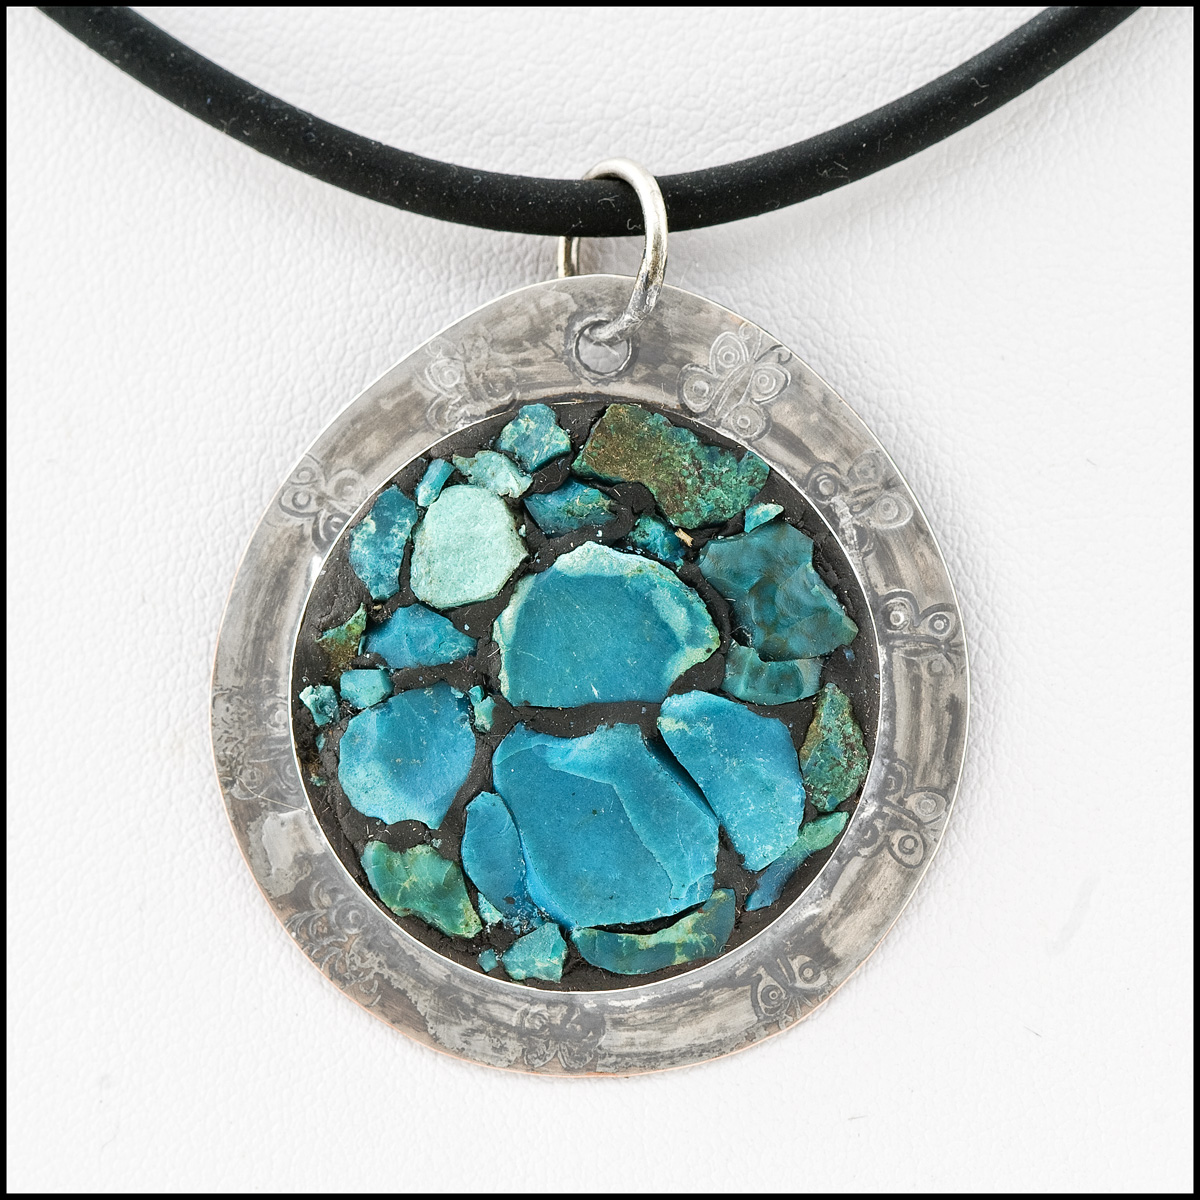 Mosaic pendant: Chrysocolla and sterling silver